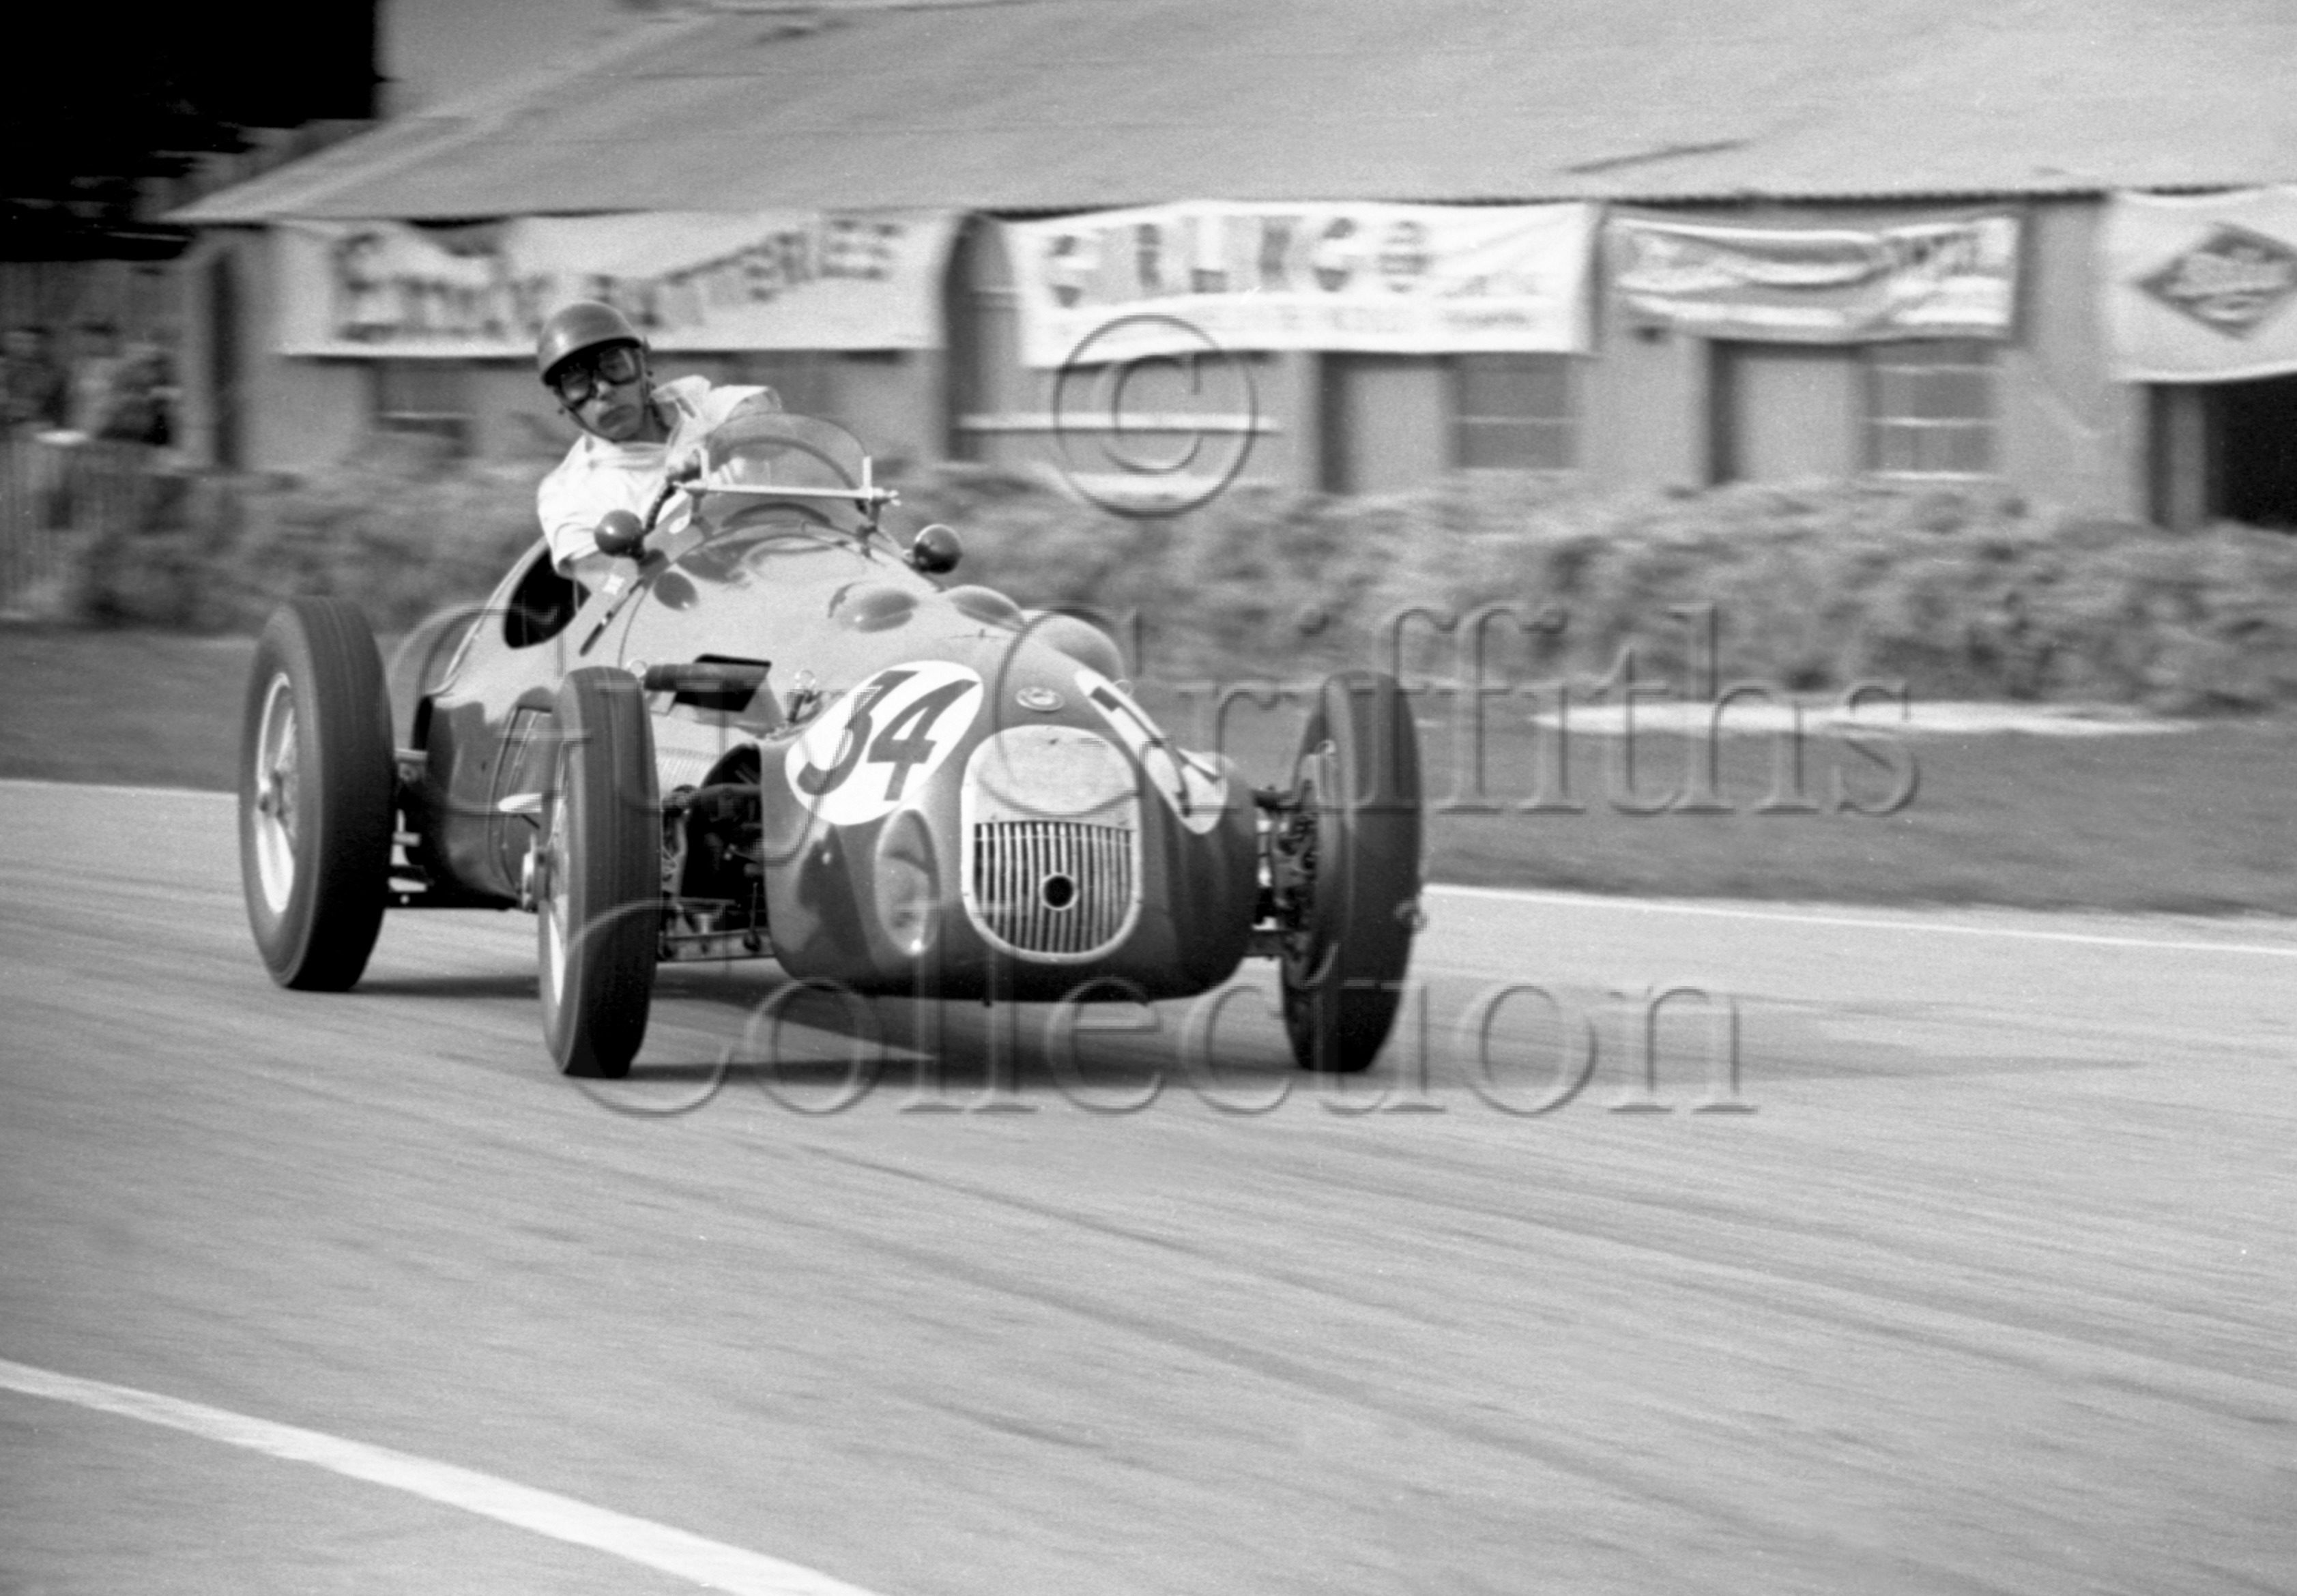 52-856–G-Abecassis–HWM–Goodwood-14-04-1952.jpg - The Guy Griffiths Collection